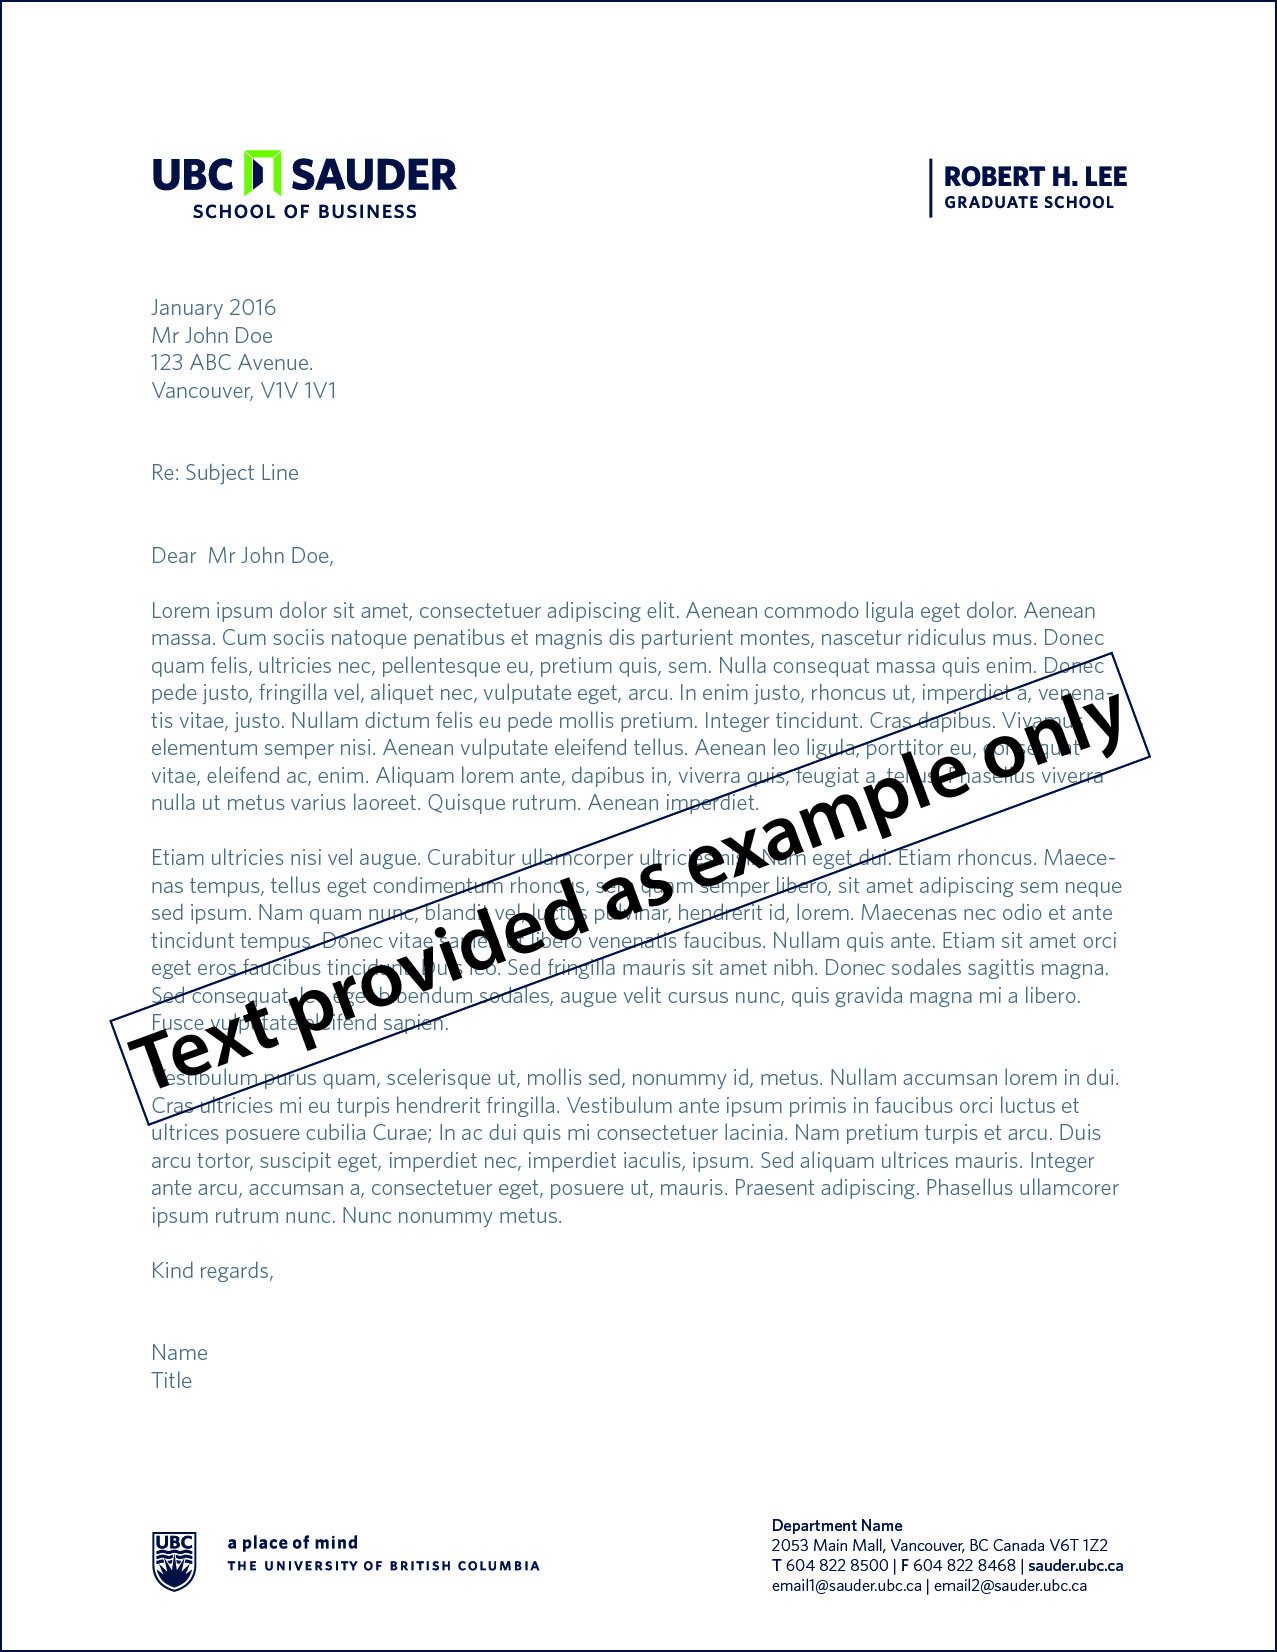 RHL letterhead example with text